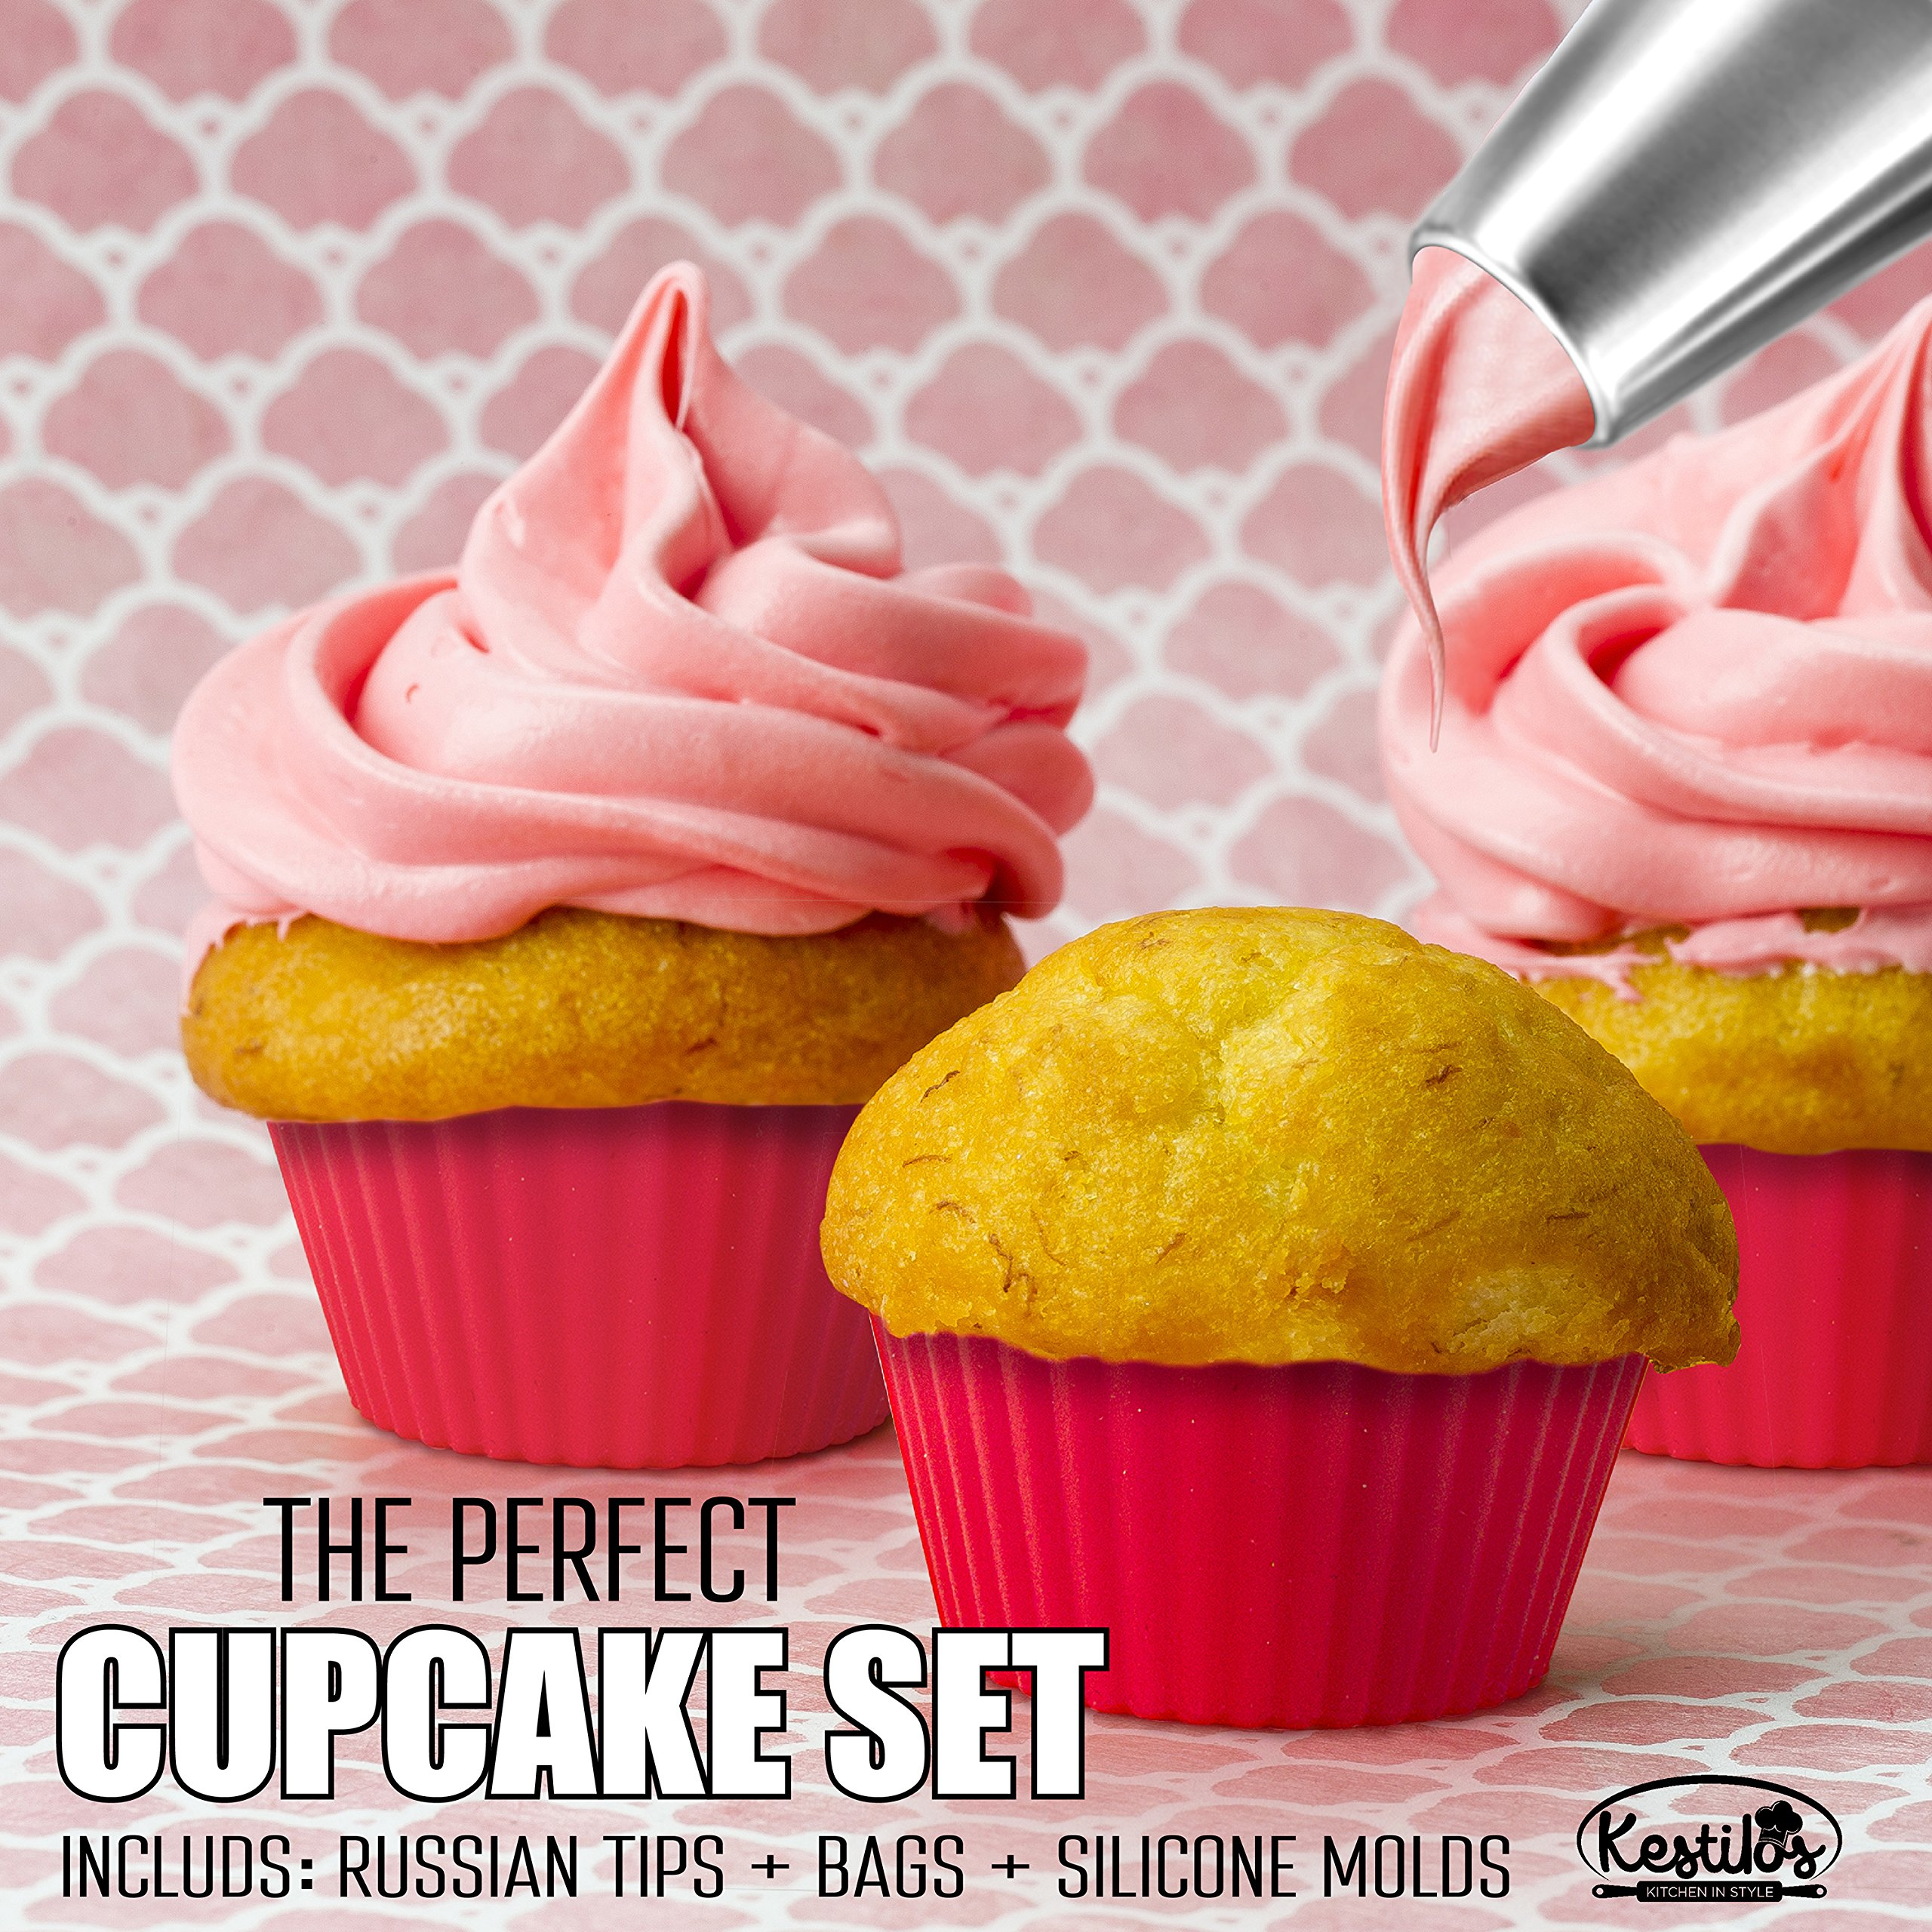 Russian Piping Tips Set By Kestilos – 7 Cake & Cupcake Decorating Icing Nozzles, A 3 Color Coupler, 5 Disposable Pastry Bags & 12 Silicon Cupcakes Molds